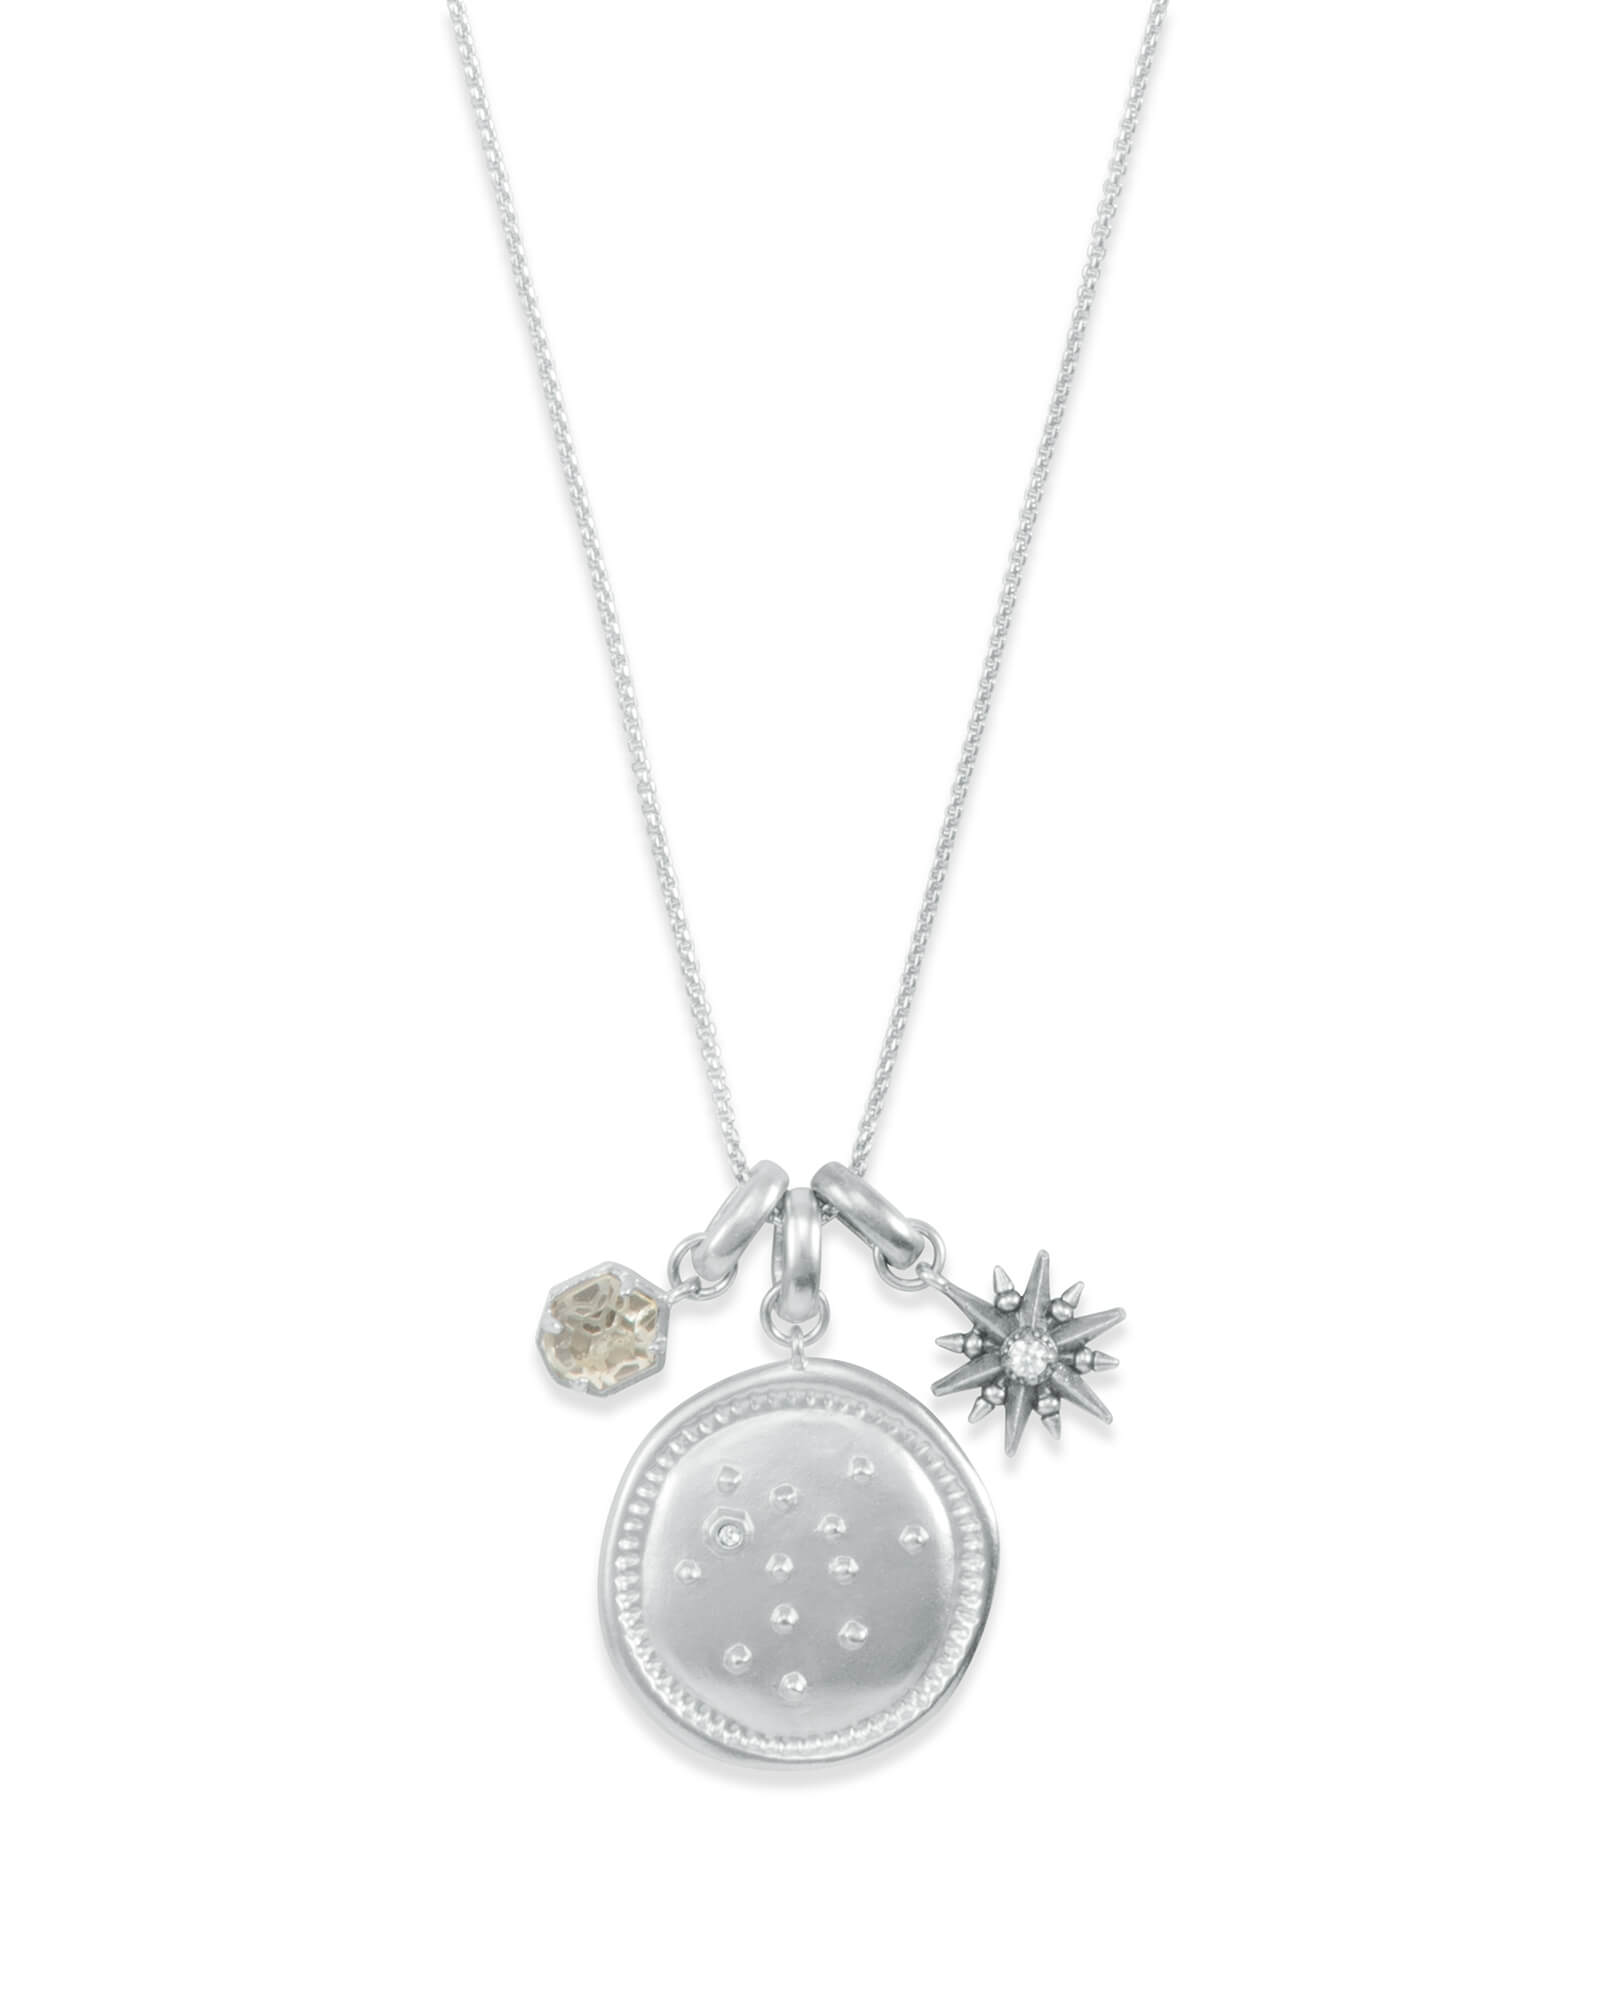 November Sagittarius Charm Necklace Set in Silver | Kendra Scott